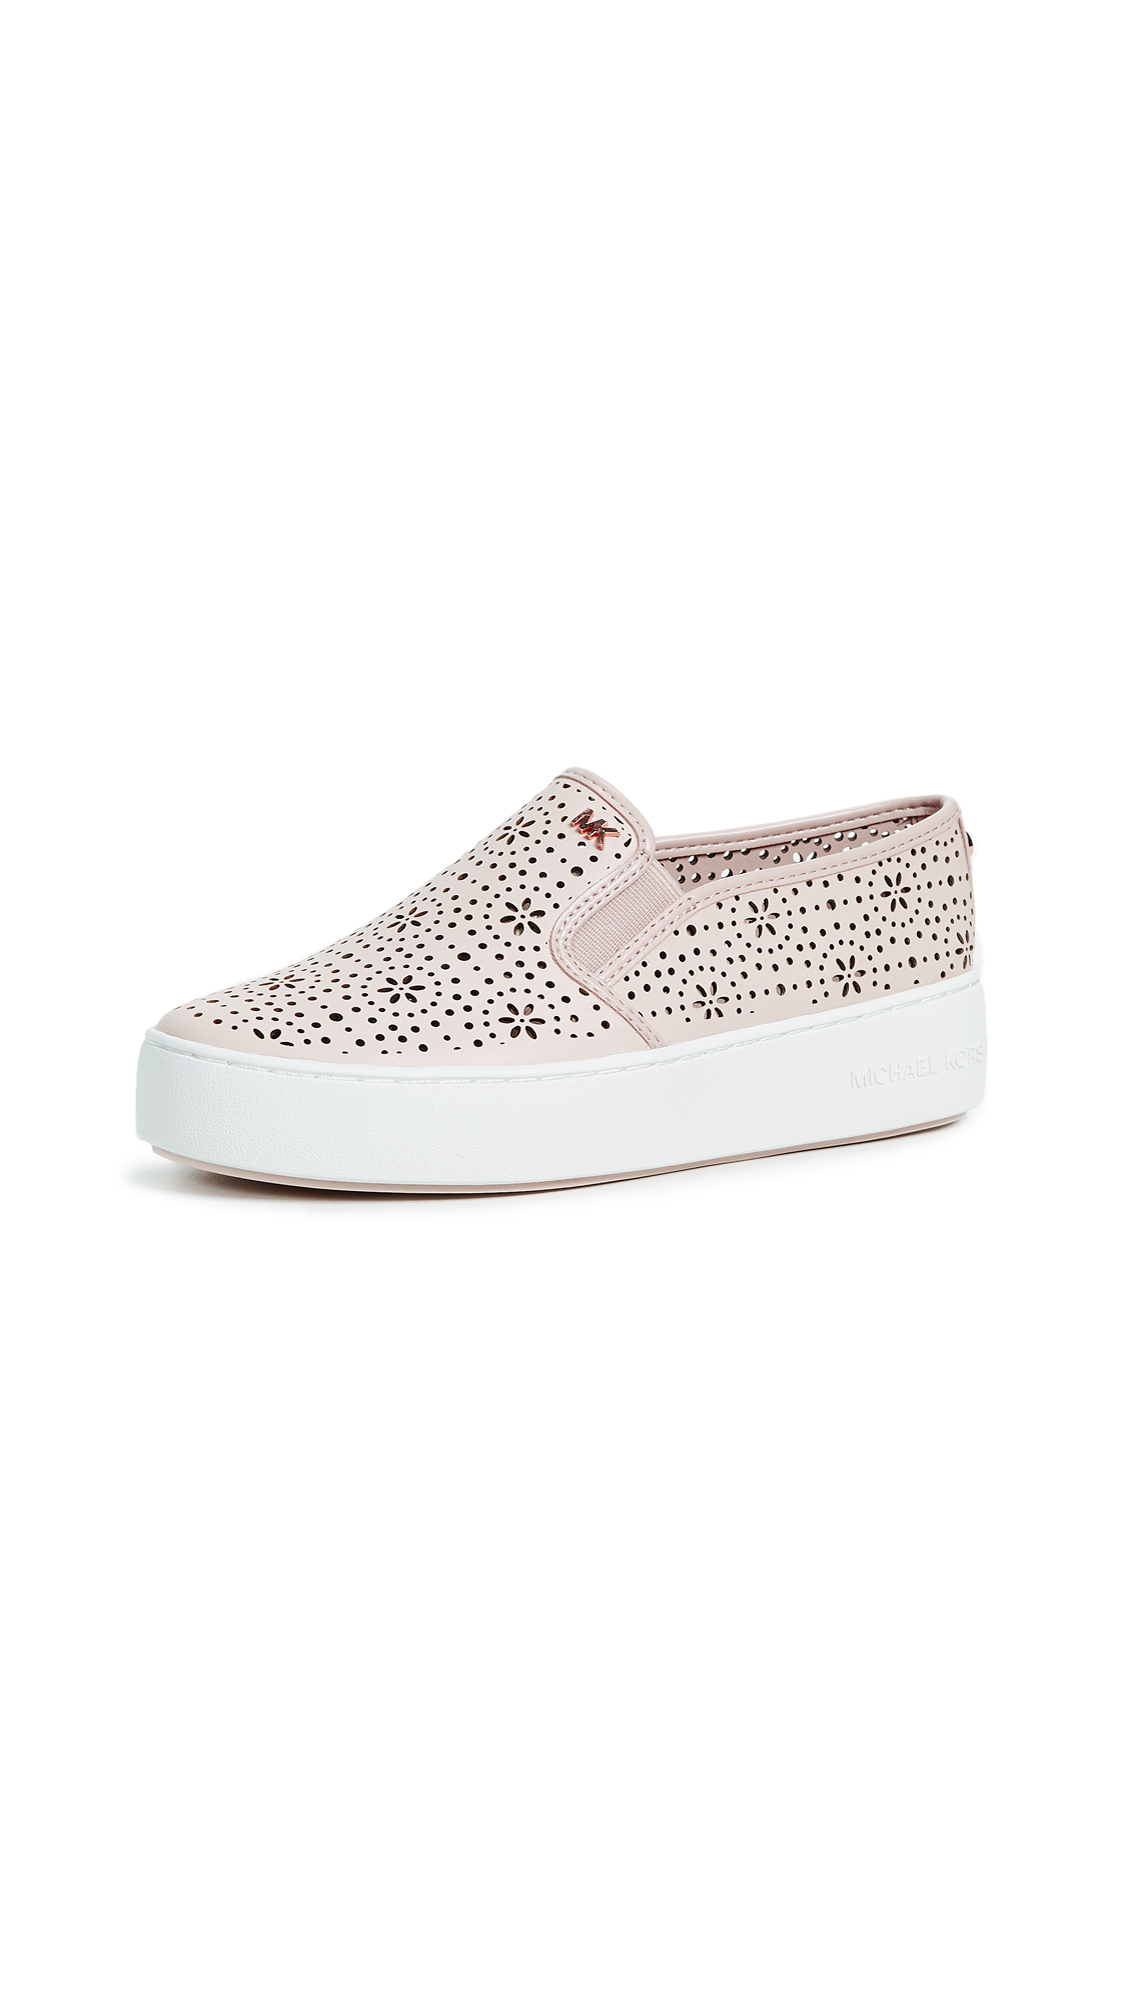 MICHAEL Michael Kors Trent Slip On Sneakers